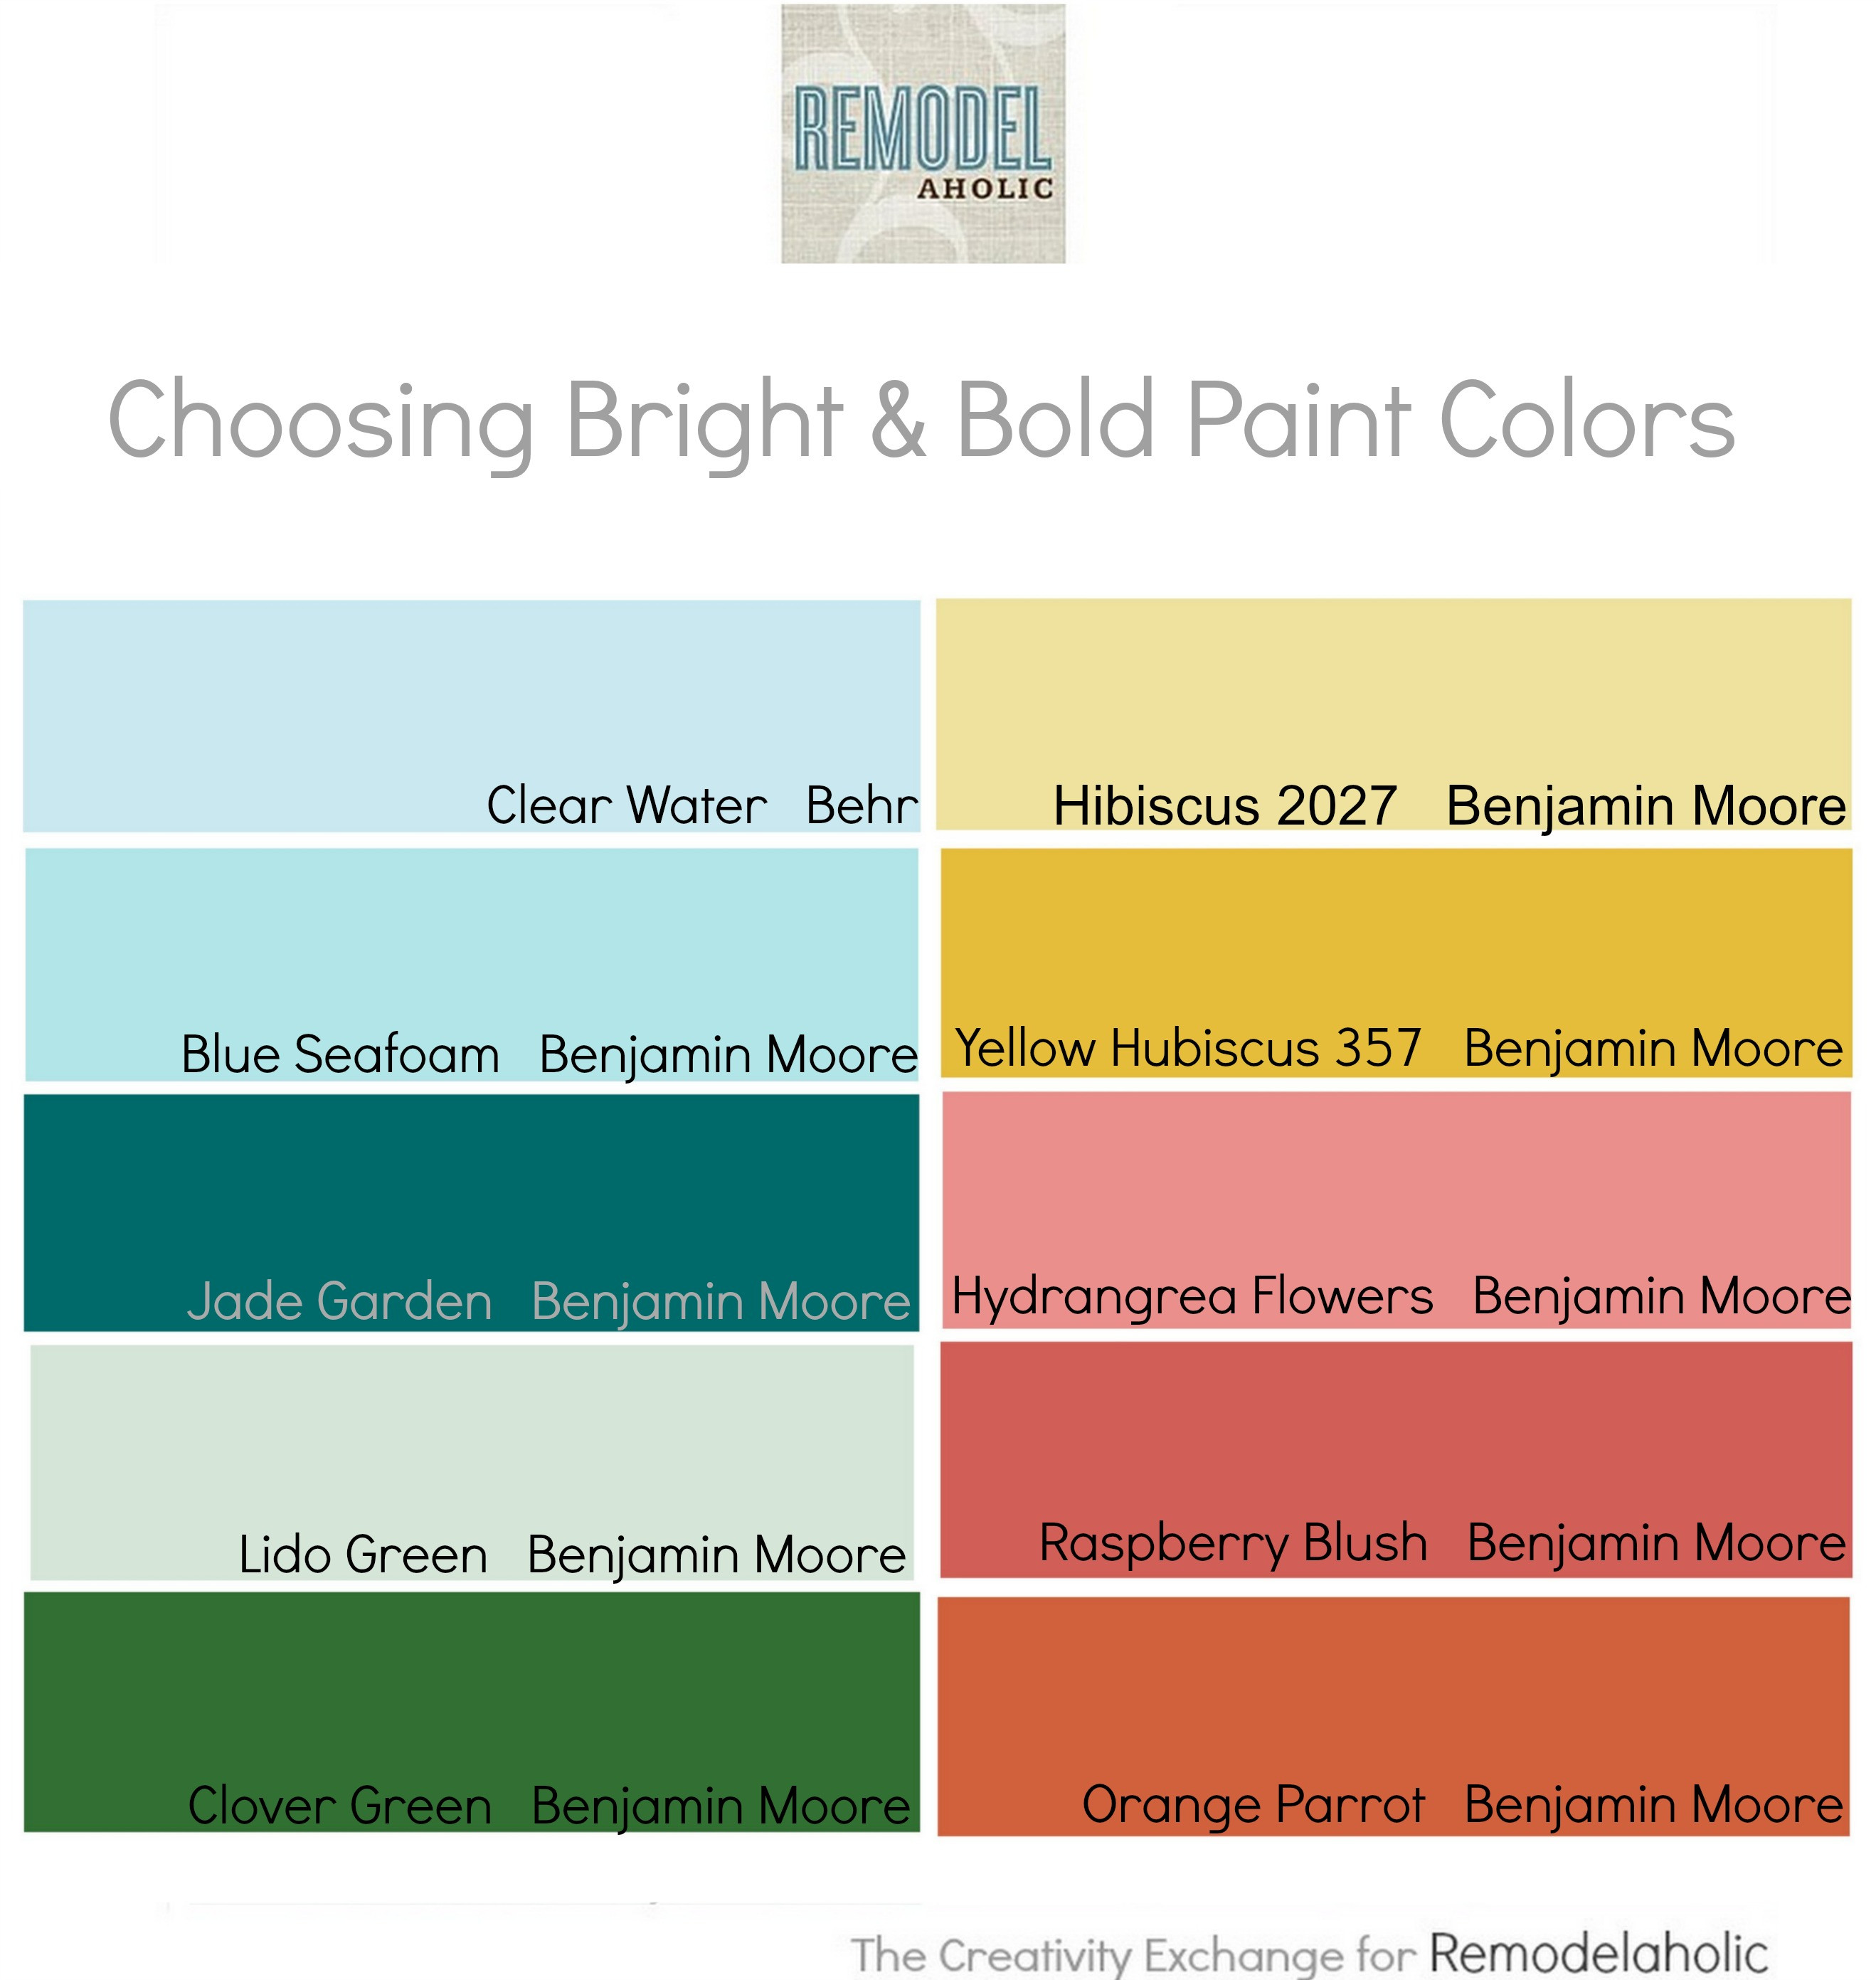 Best ideas about Choosing Paint Colors . Save or Pin Remodelaholic Now.